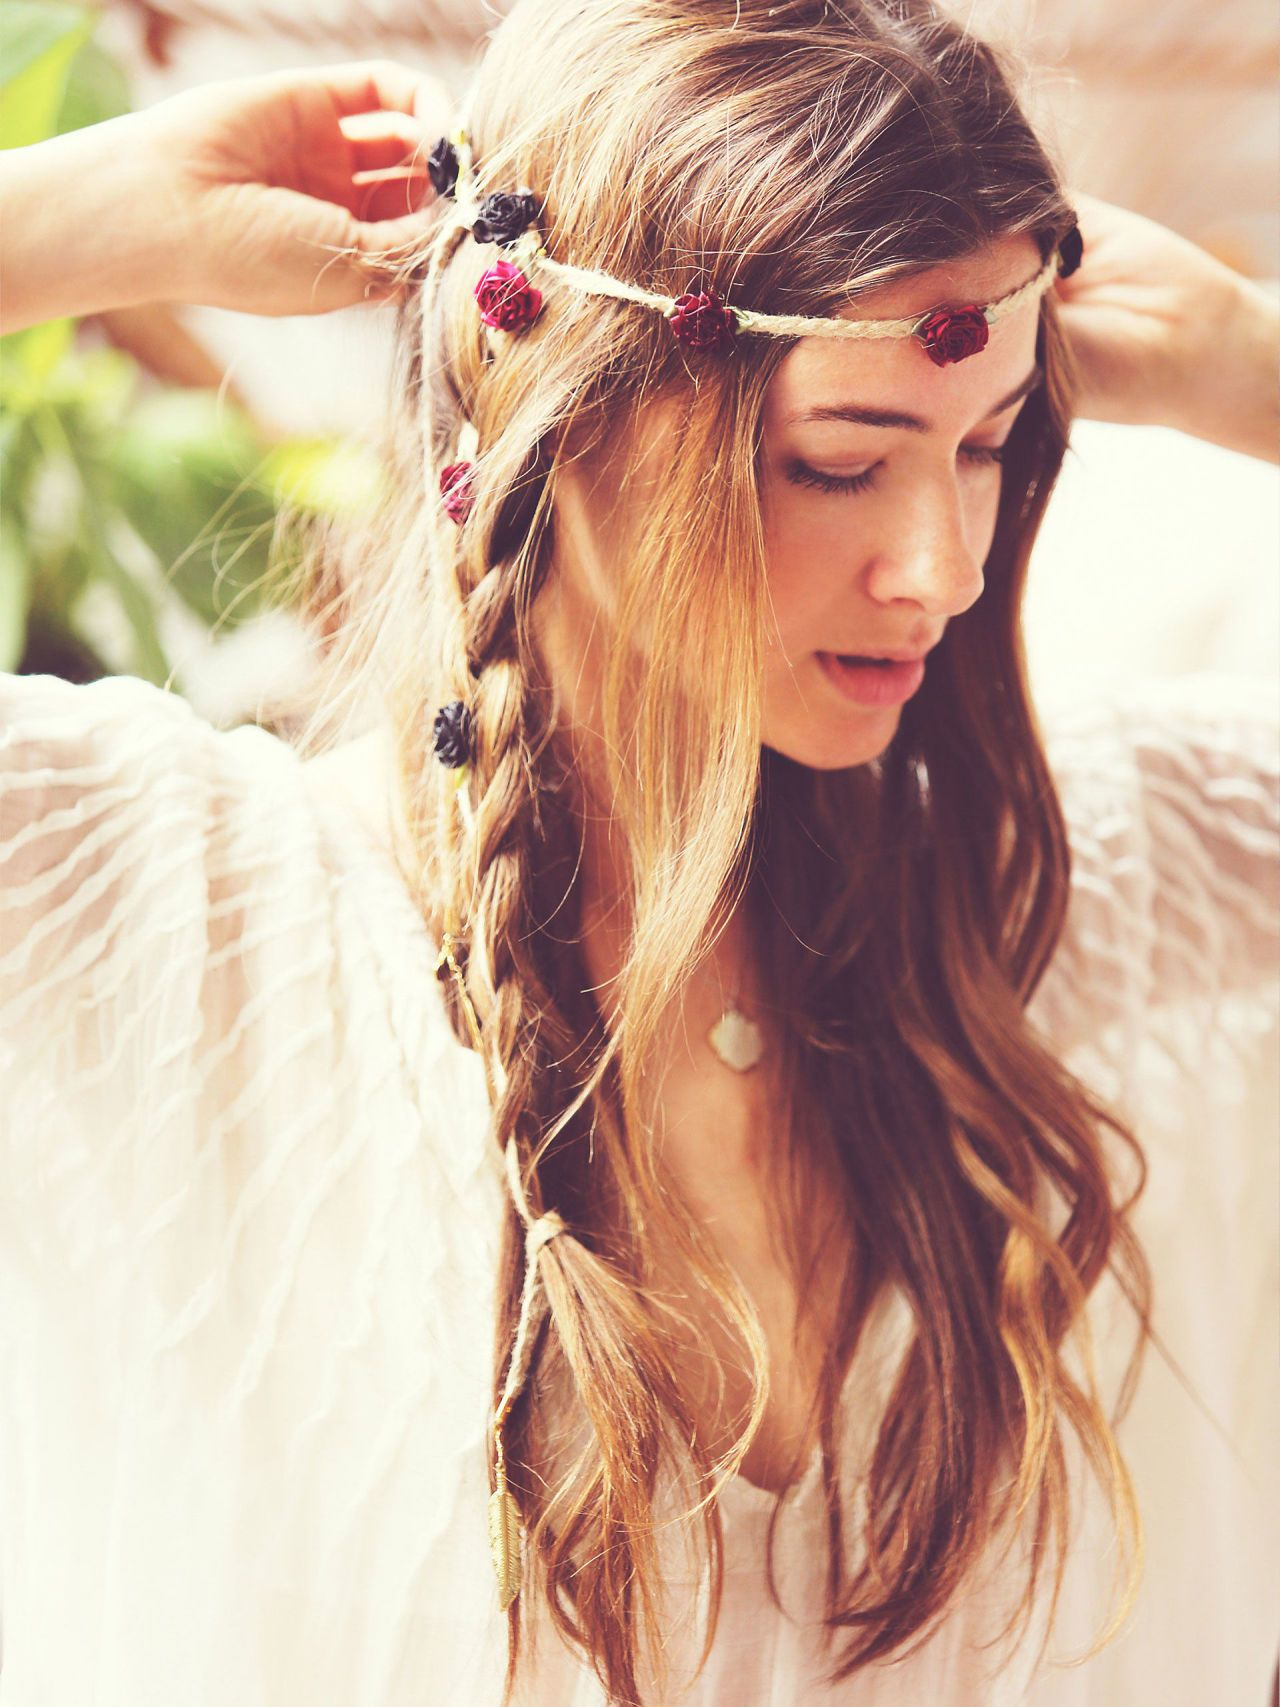 Fashion style Bohemian Female hairstyles for woman